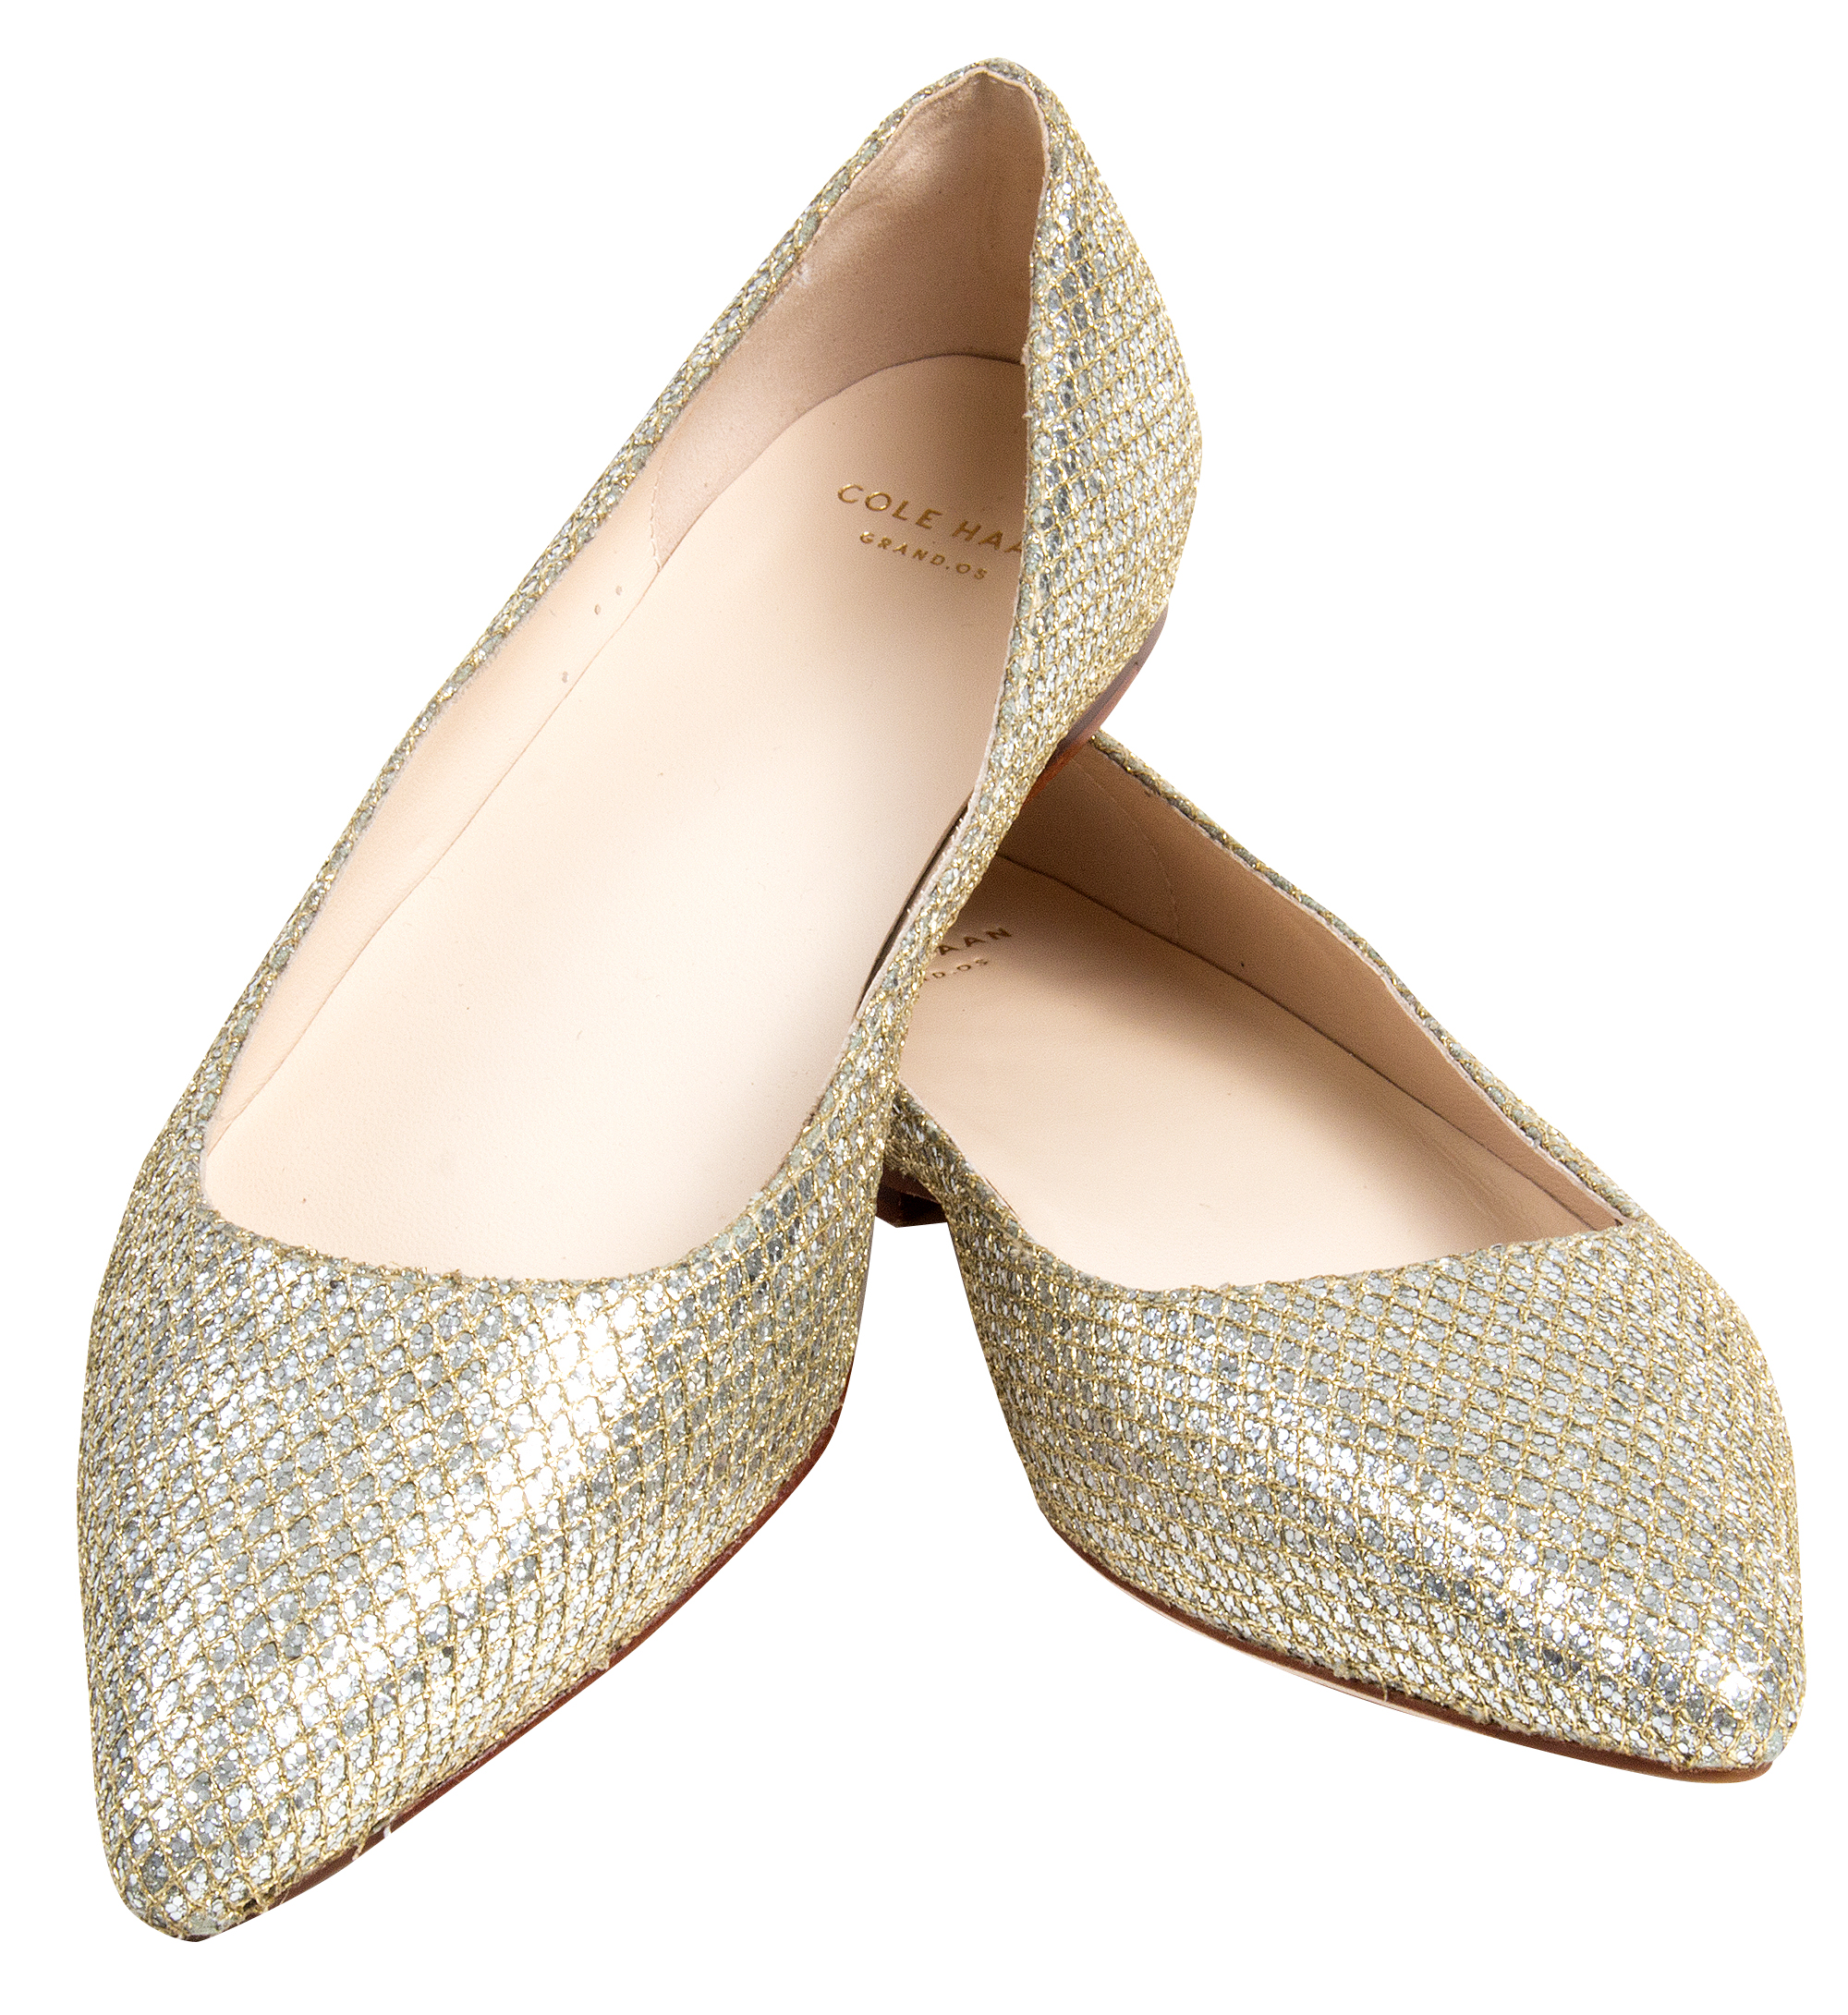 "Cole Haan ""Tartine Skimmer Glitter"" shoes, $198 at Gwynn's of Mount Pleasant"